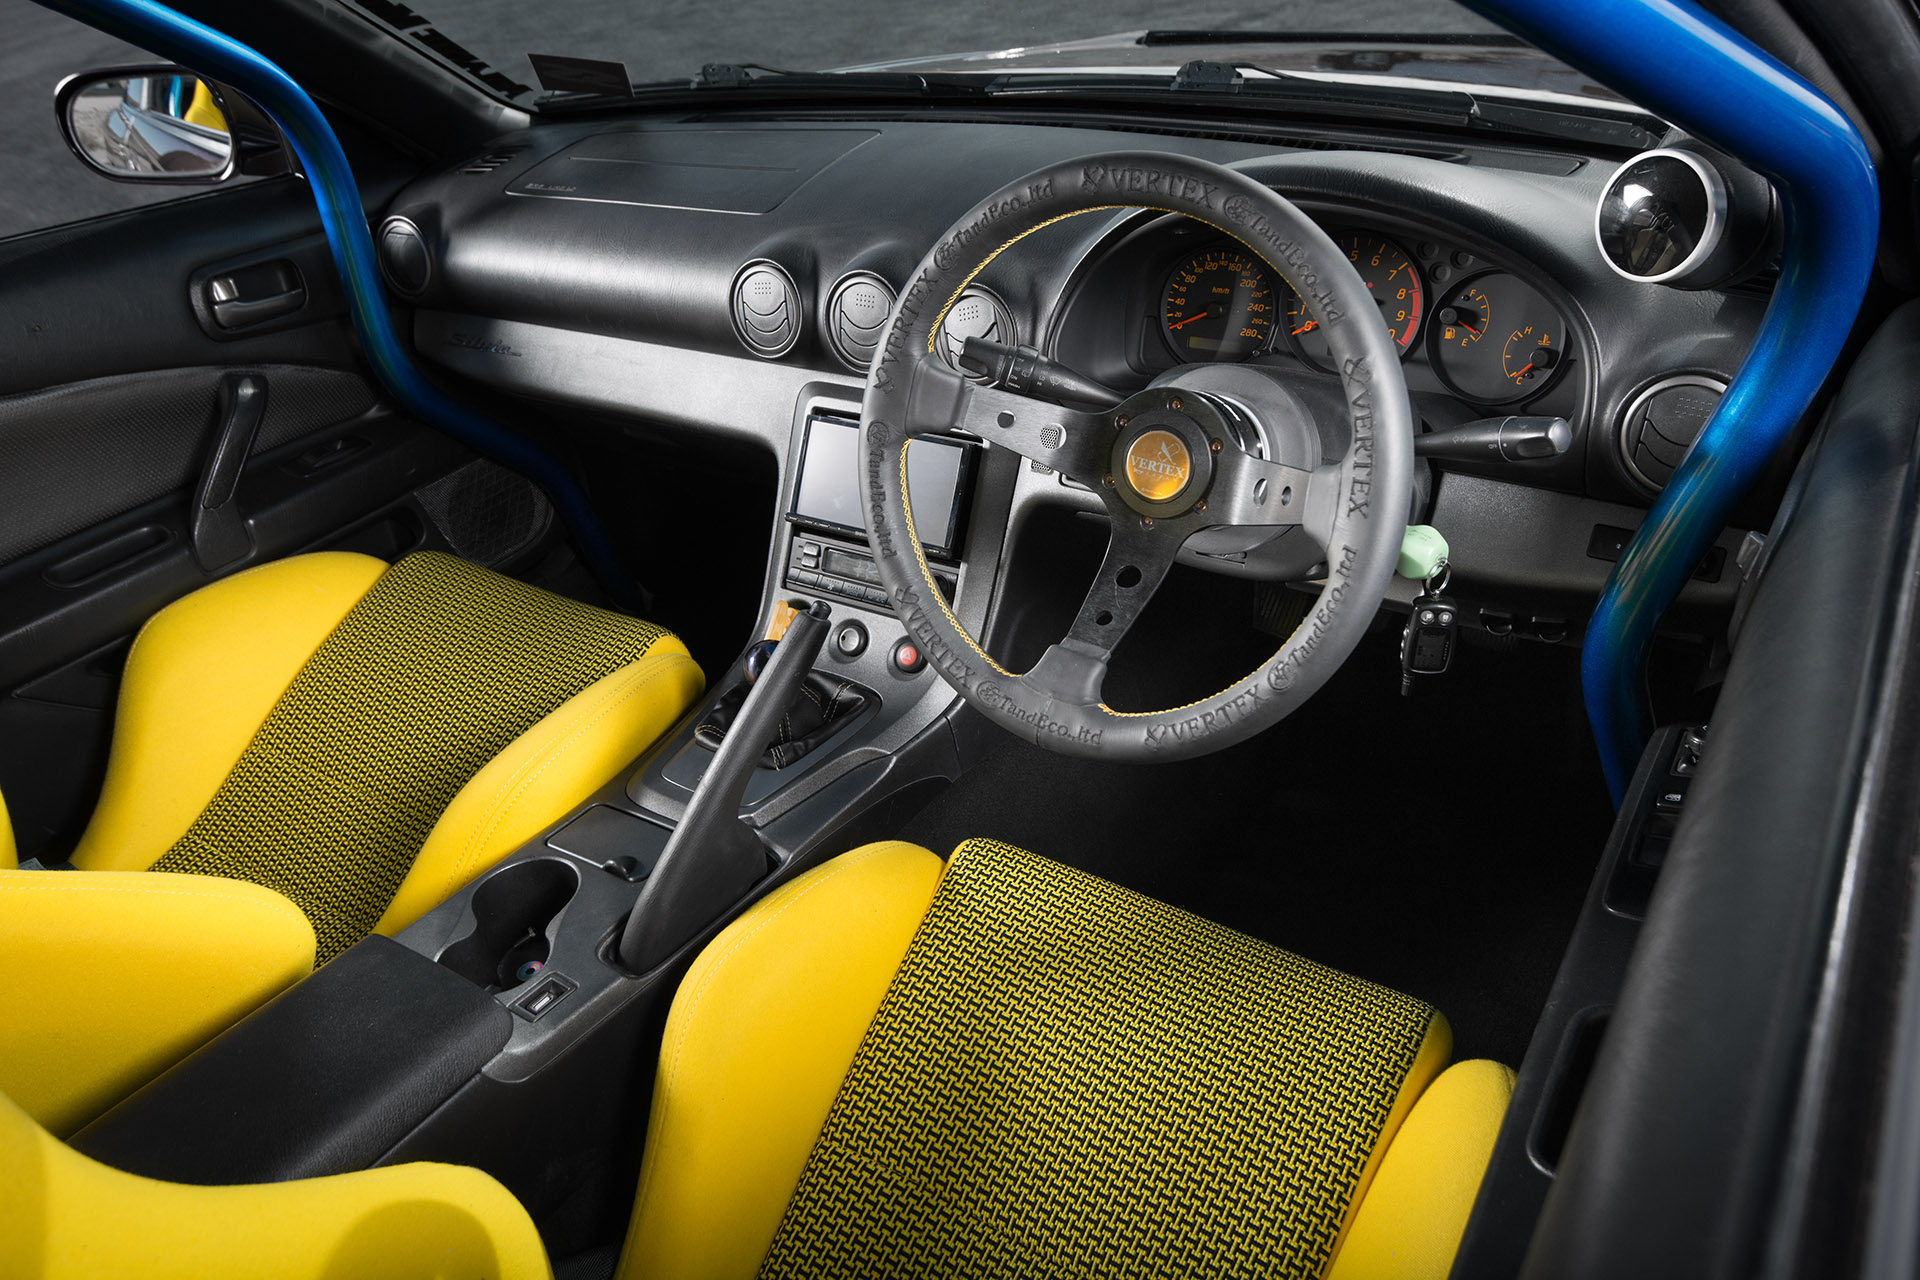 Nissan RB26DETT swapped Midnight Purple III S15 Silvia Super Street magazine interior yellow seats steering wheel automotive photography